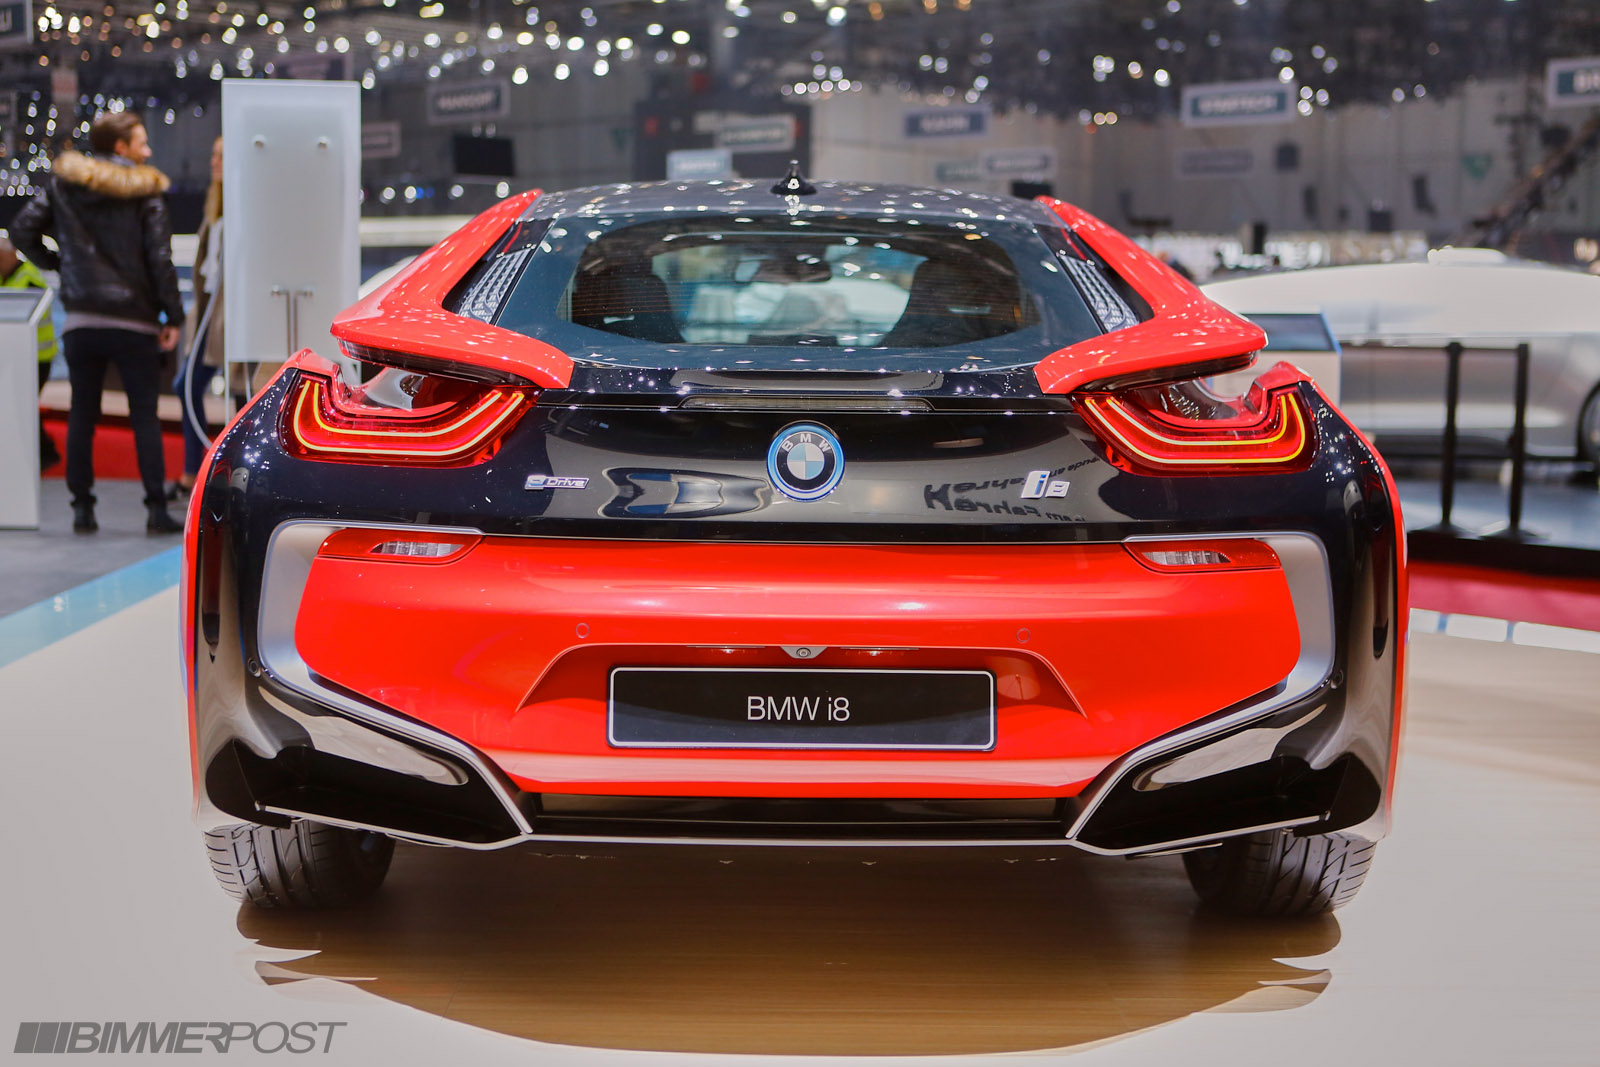 New Limited Edition Bmw I8 Protonic Red Edition W Geneva Auto Show